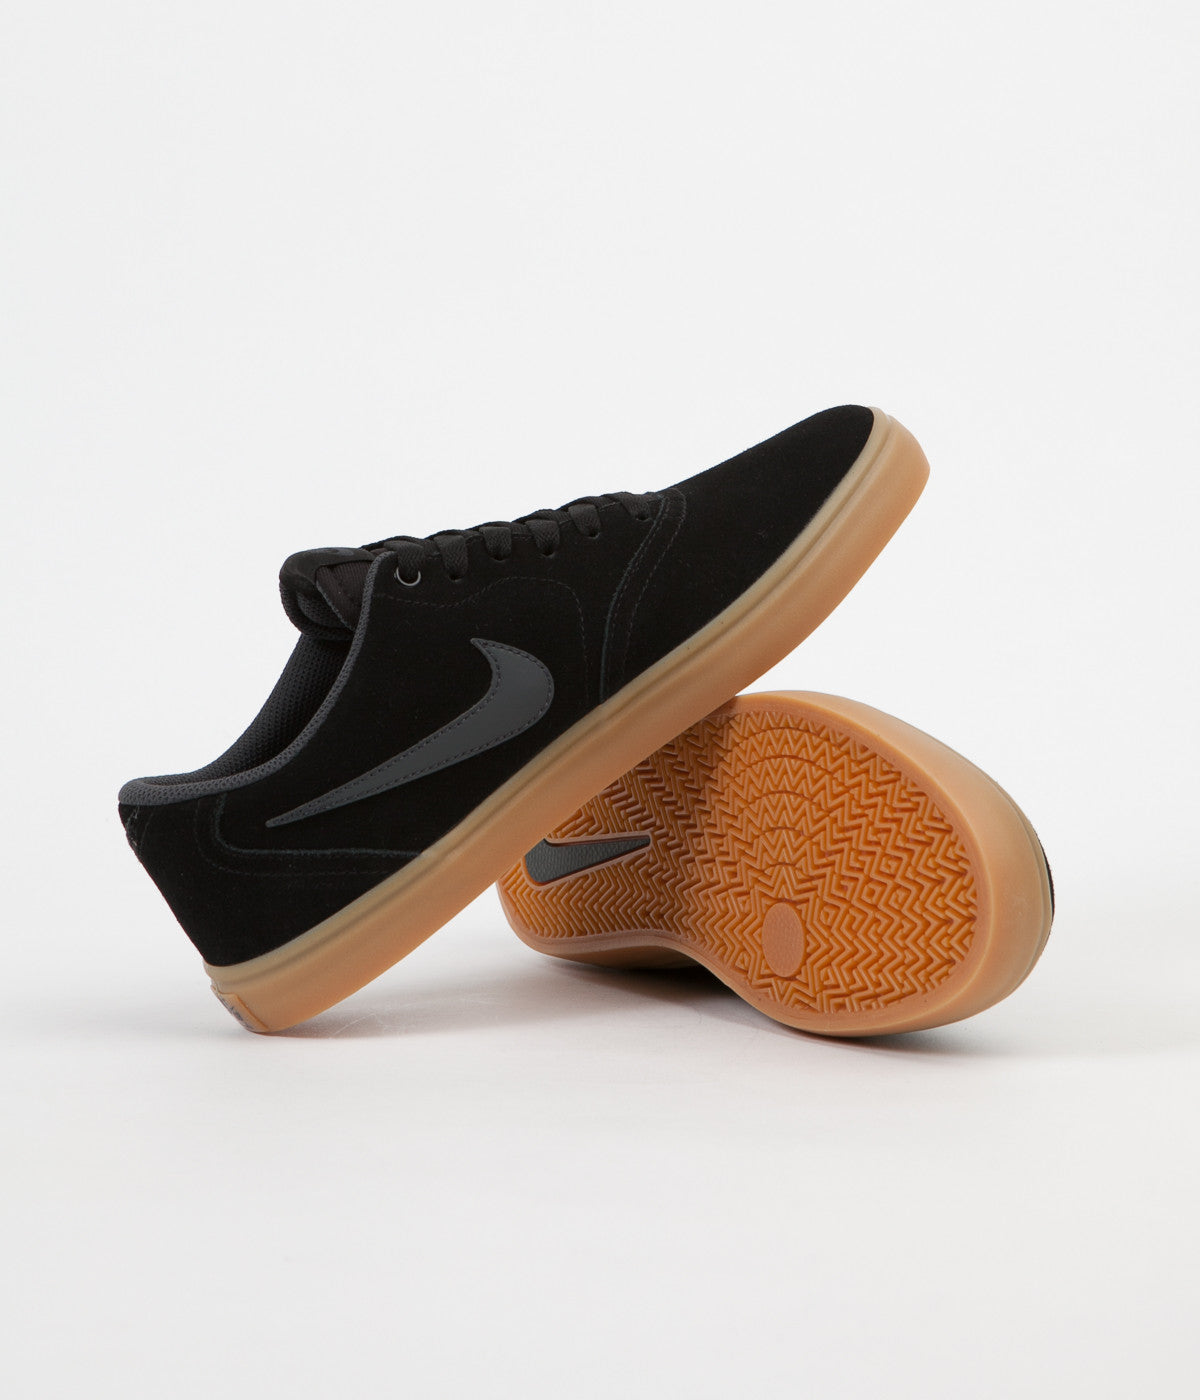 b19de7610c3f ... Nike SB Check Solarsoft Shoes - Black   Anthracite - Gum Dark Brown ...